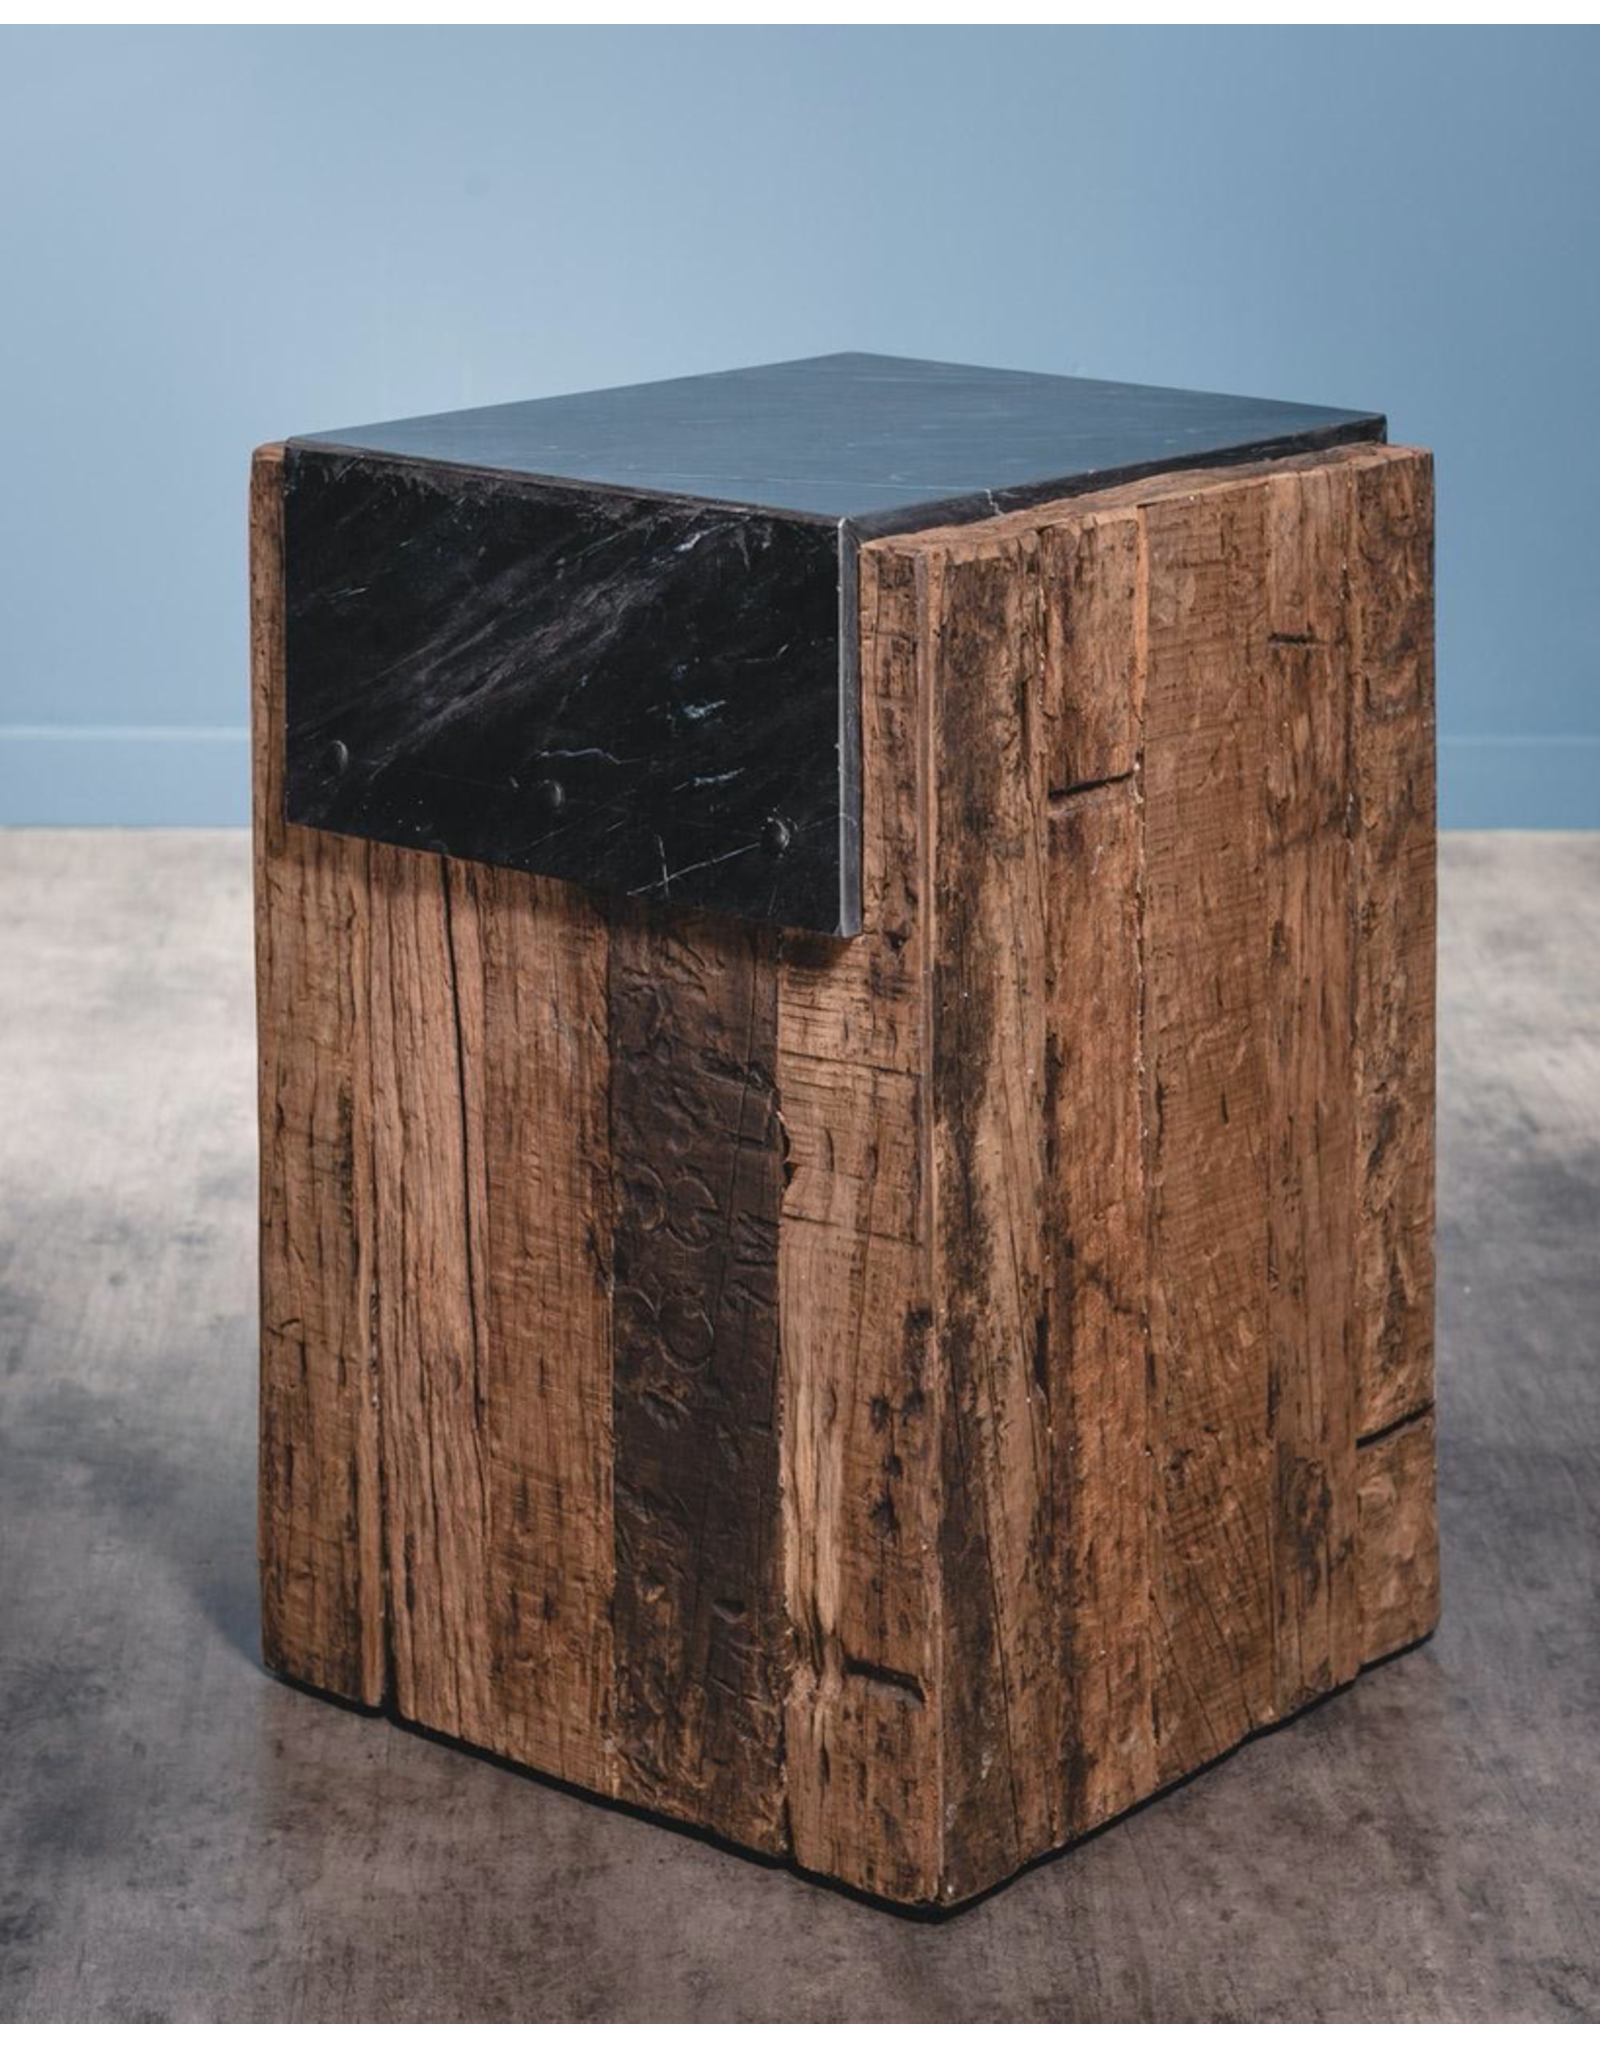 OBJET DE CURIOSITE RAILWAY SLEEPERS AND BLACK MARBLE, SIDE TABLE